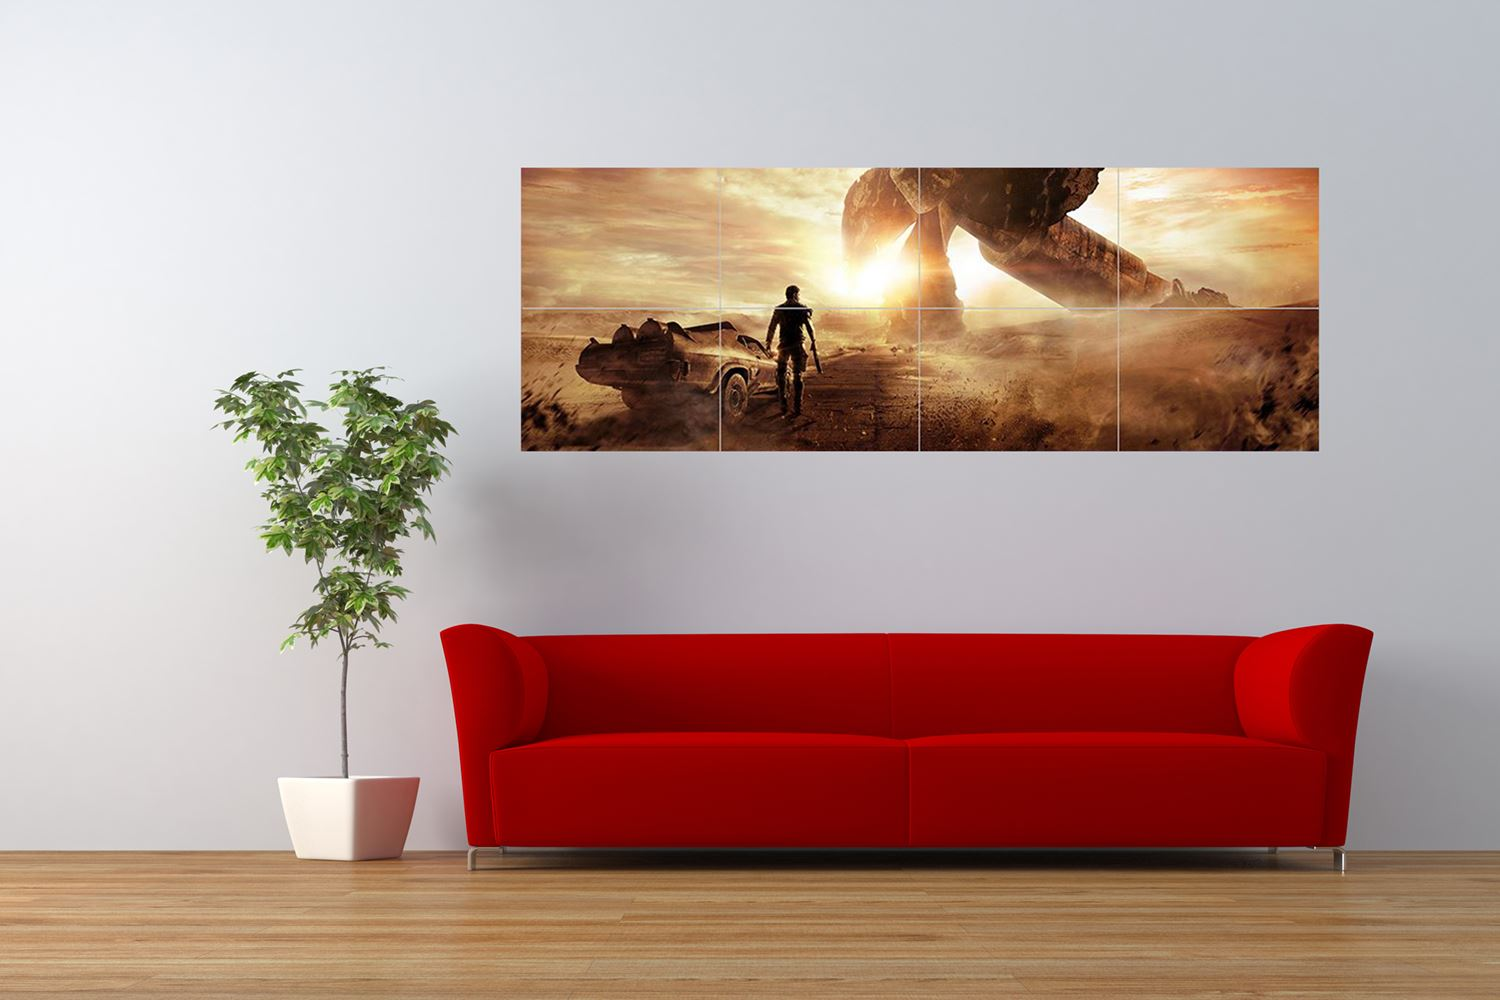 mad max movie miller mel gibson panoramic giant art print panel poster nor0271 ebay. Black Bedroom Furniture Sets. Home Design Ideas